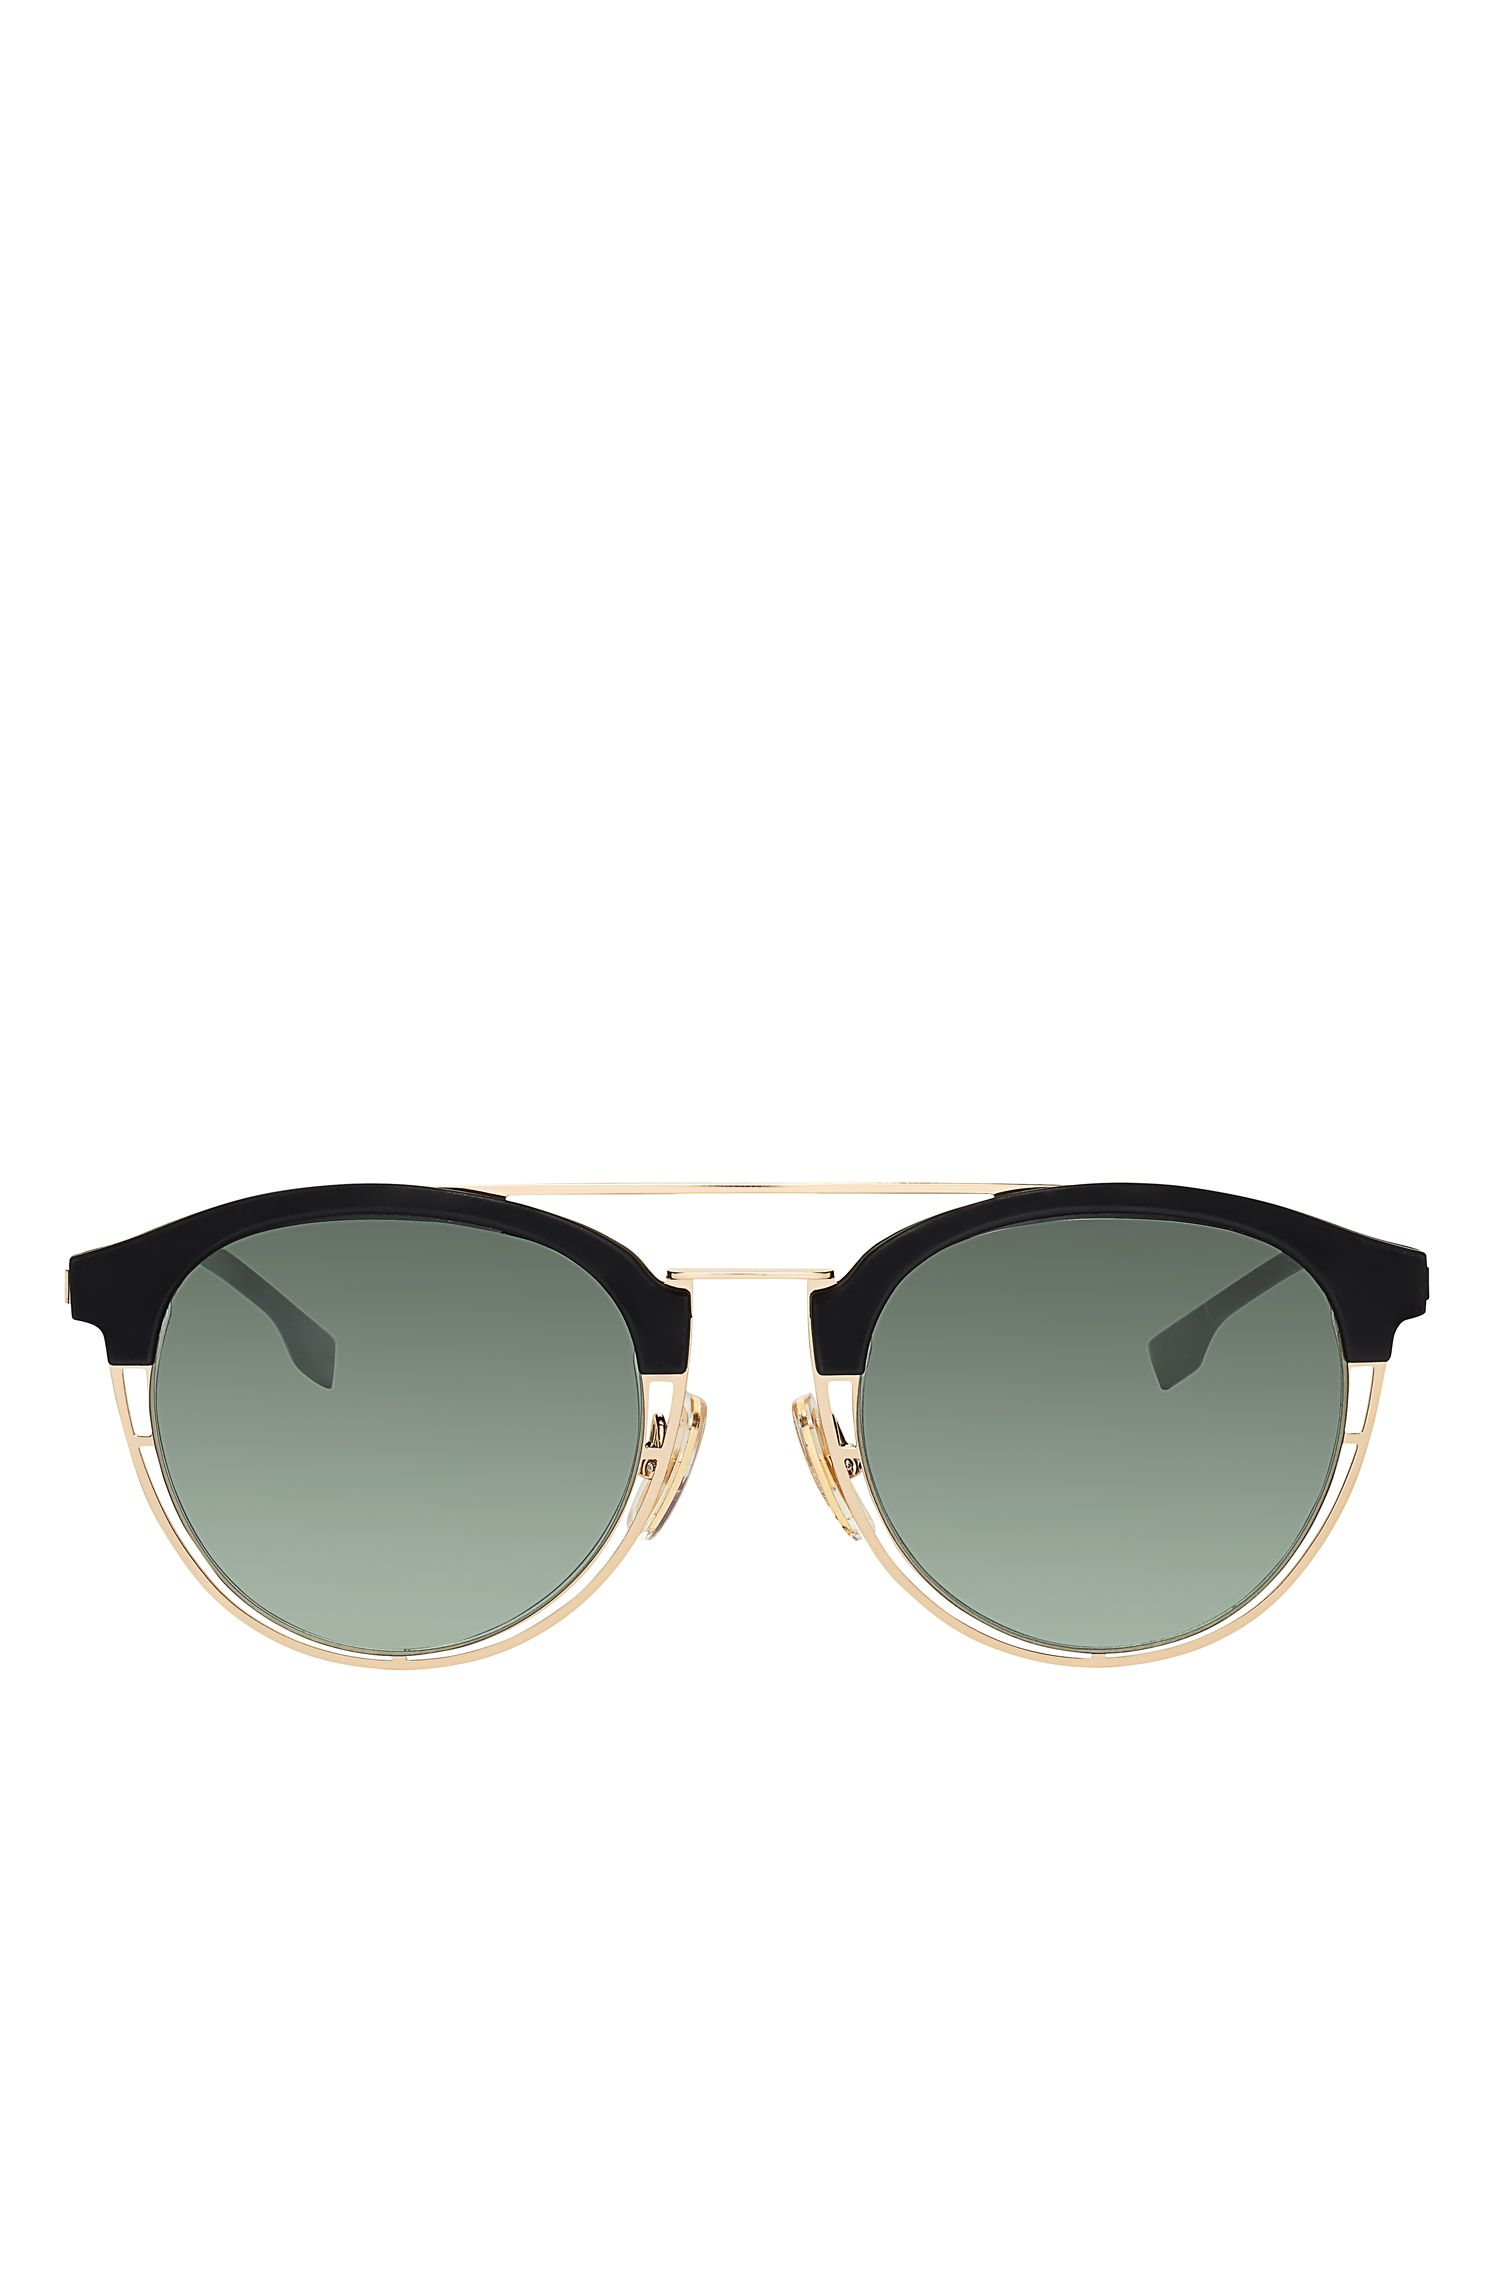 Gray Green Lens Clubmaster Sunglasses | BOSS 0784S